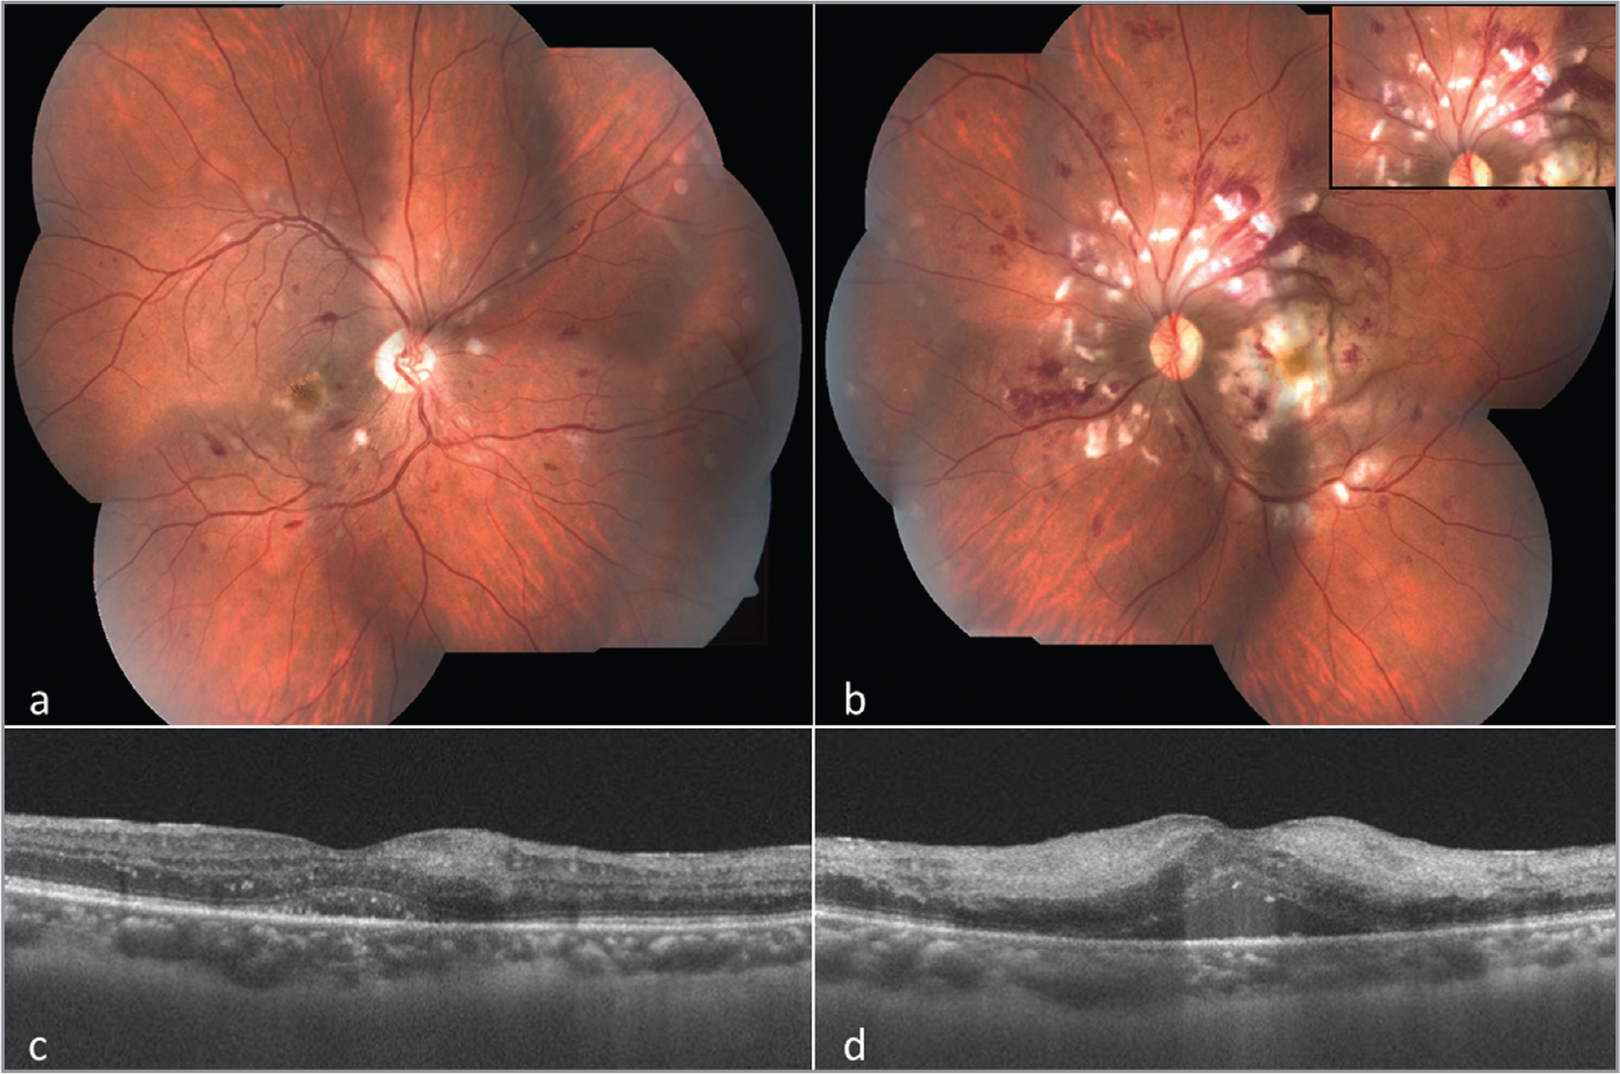 Color fundus photo of right eye (a) shows multiple intraretinal (dot-blot, flame shaped) hemorrhages, cotton-wool spots, and areas of retinal whitening predominantly involving the posterior pole in both eyes. In addition, left eye (b) also shows severe retinal whitening in the macular area. On close look, segmentation of blood columns (cattle trucking of veins) in the superior arcade vessels (inset) can be noted. Optical coherence tomography (horizontal line scan) of both eyes (c, d) shows hyperreflectivity of inner retinal layers and neurosensory detachment at fovea, features being more pronounced in the left eye (d).